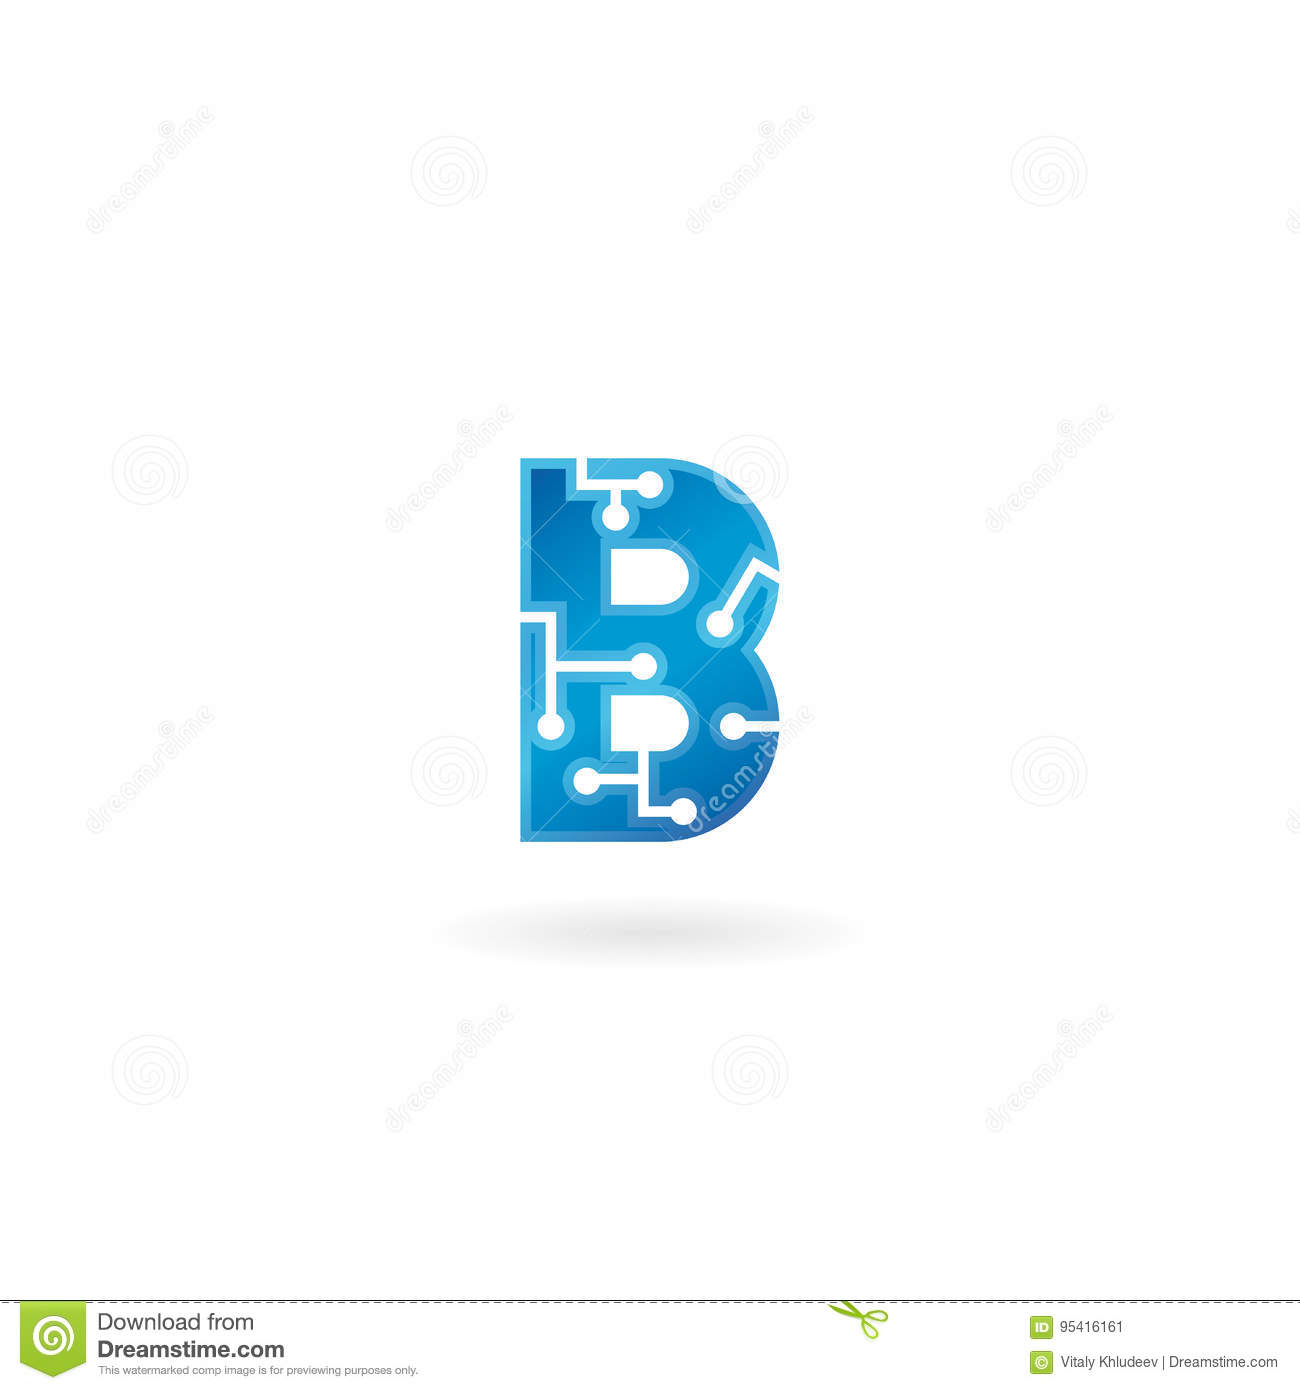 Letter B icon. Technology Smart logo, computer and data related business, hi-tech and innovative, electronic.